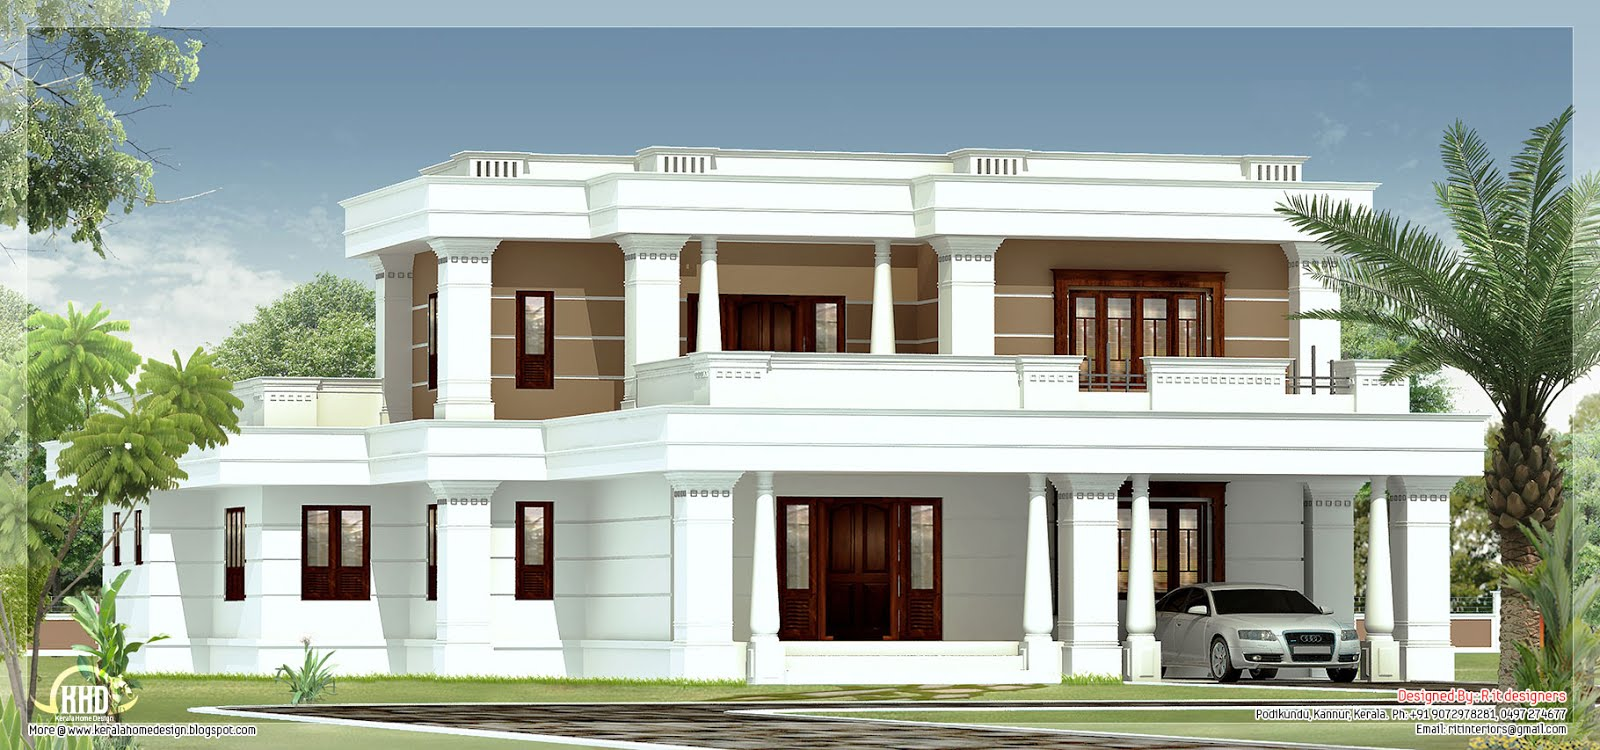 4 Bedroom Flat Roof Villa Kerala Home Design And Floor Plans